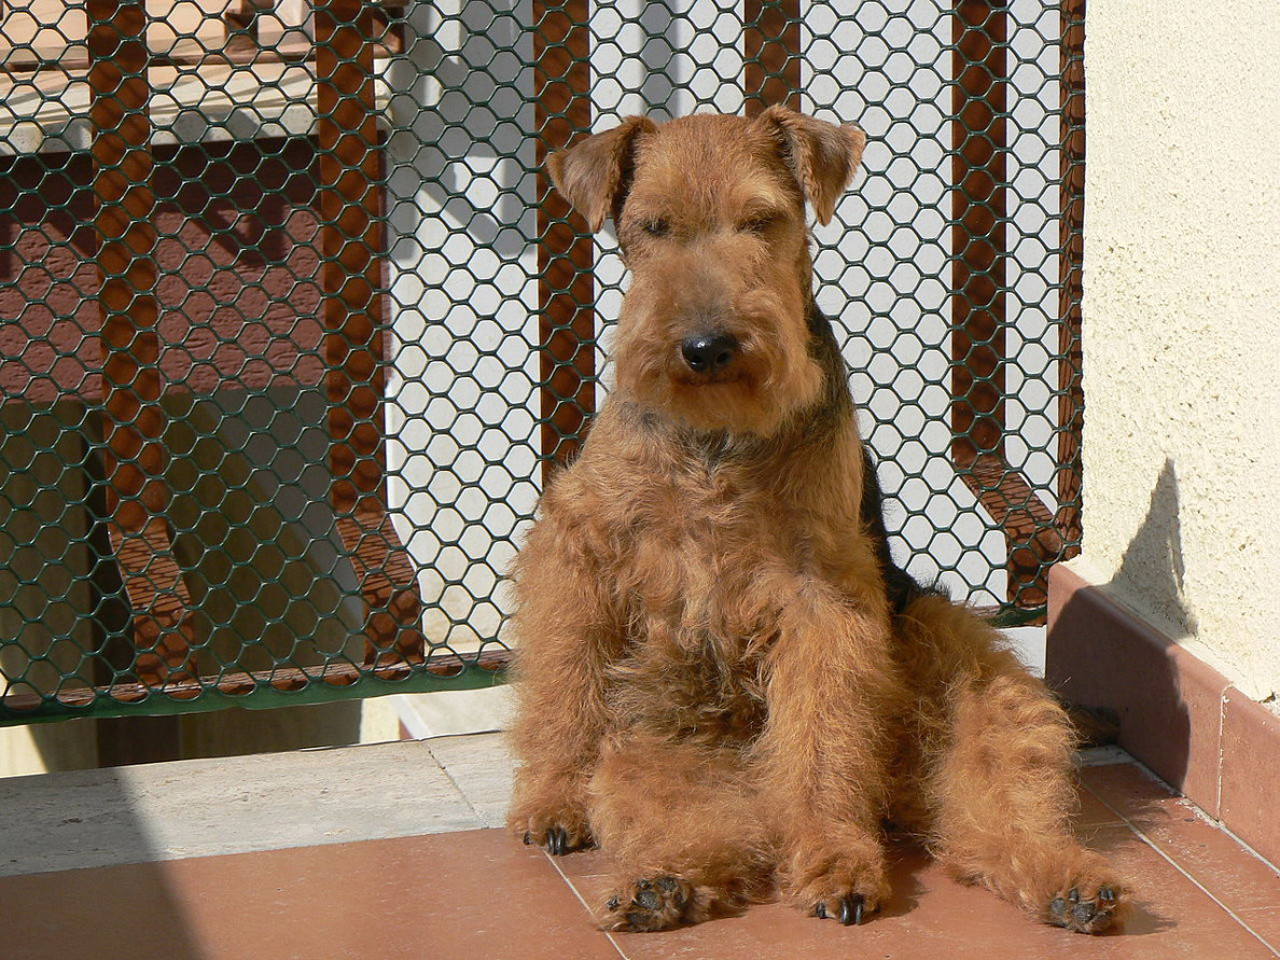 Cane di razza Welsh Terrier